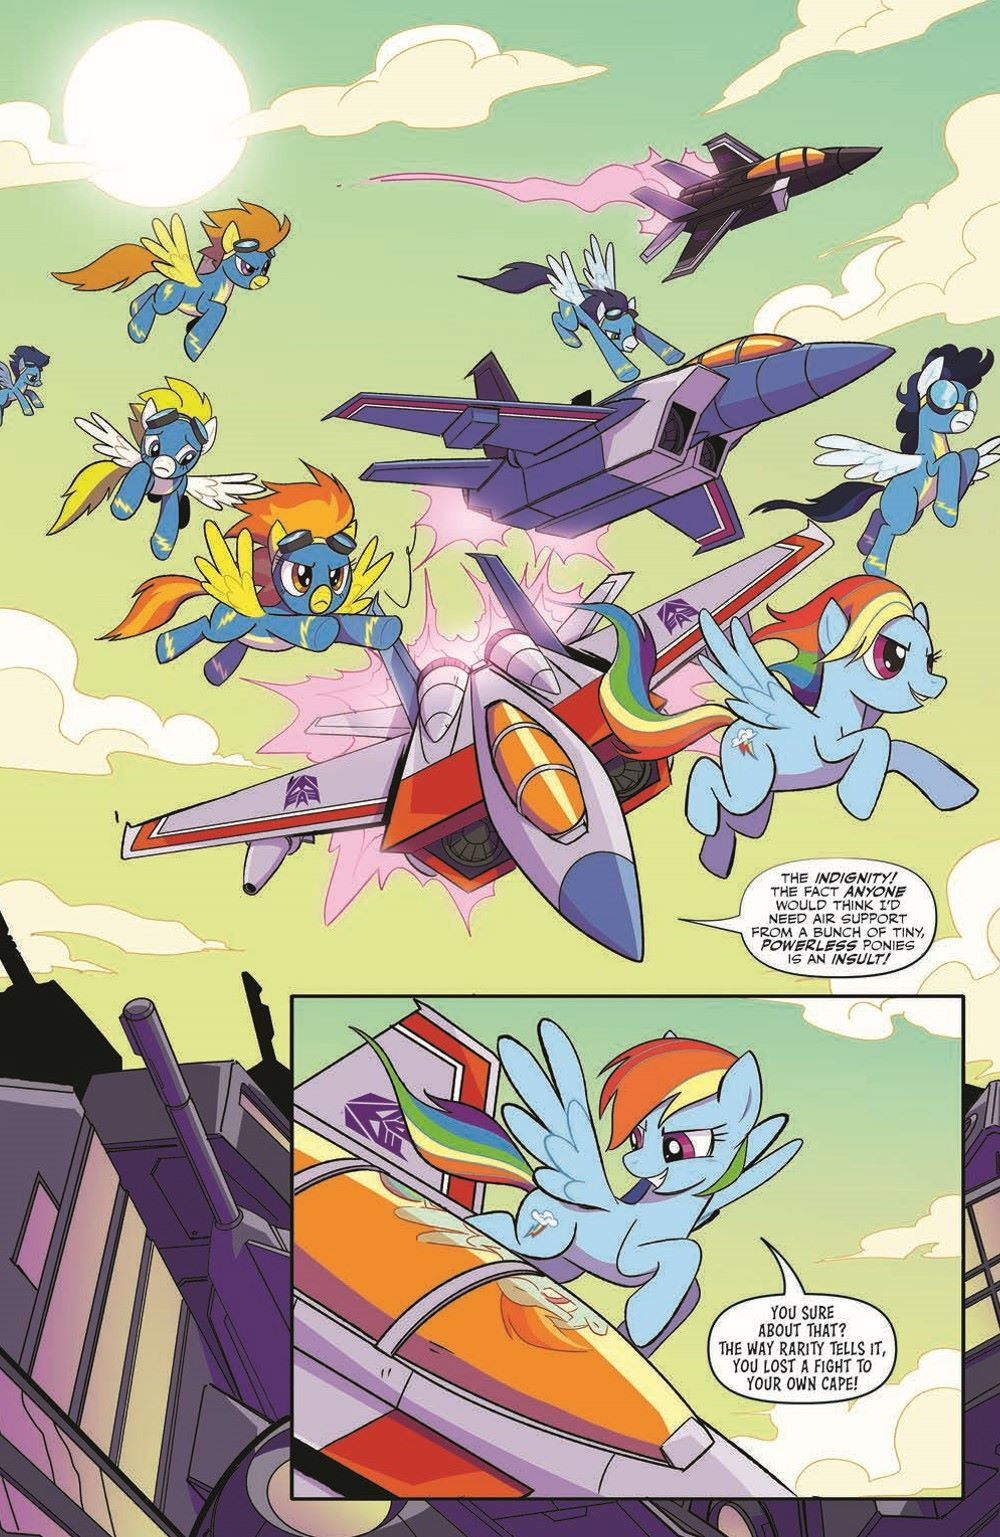 TFMLP2-02-pr-3 ComicList Previews: MY LITTLE PONY TRANSFORMERS II #2 (OF 4)